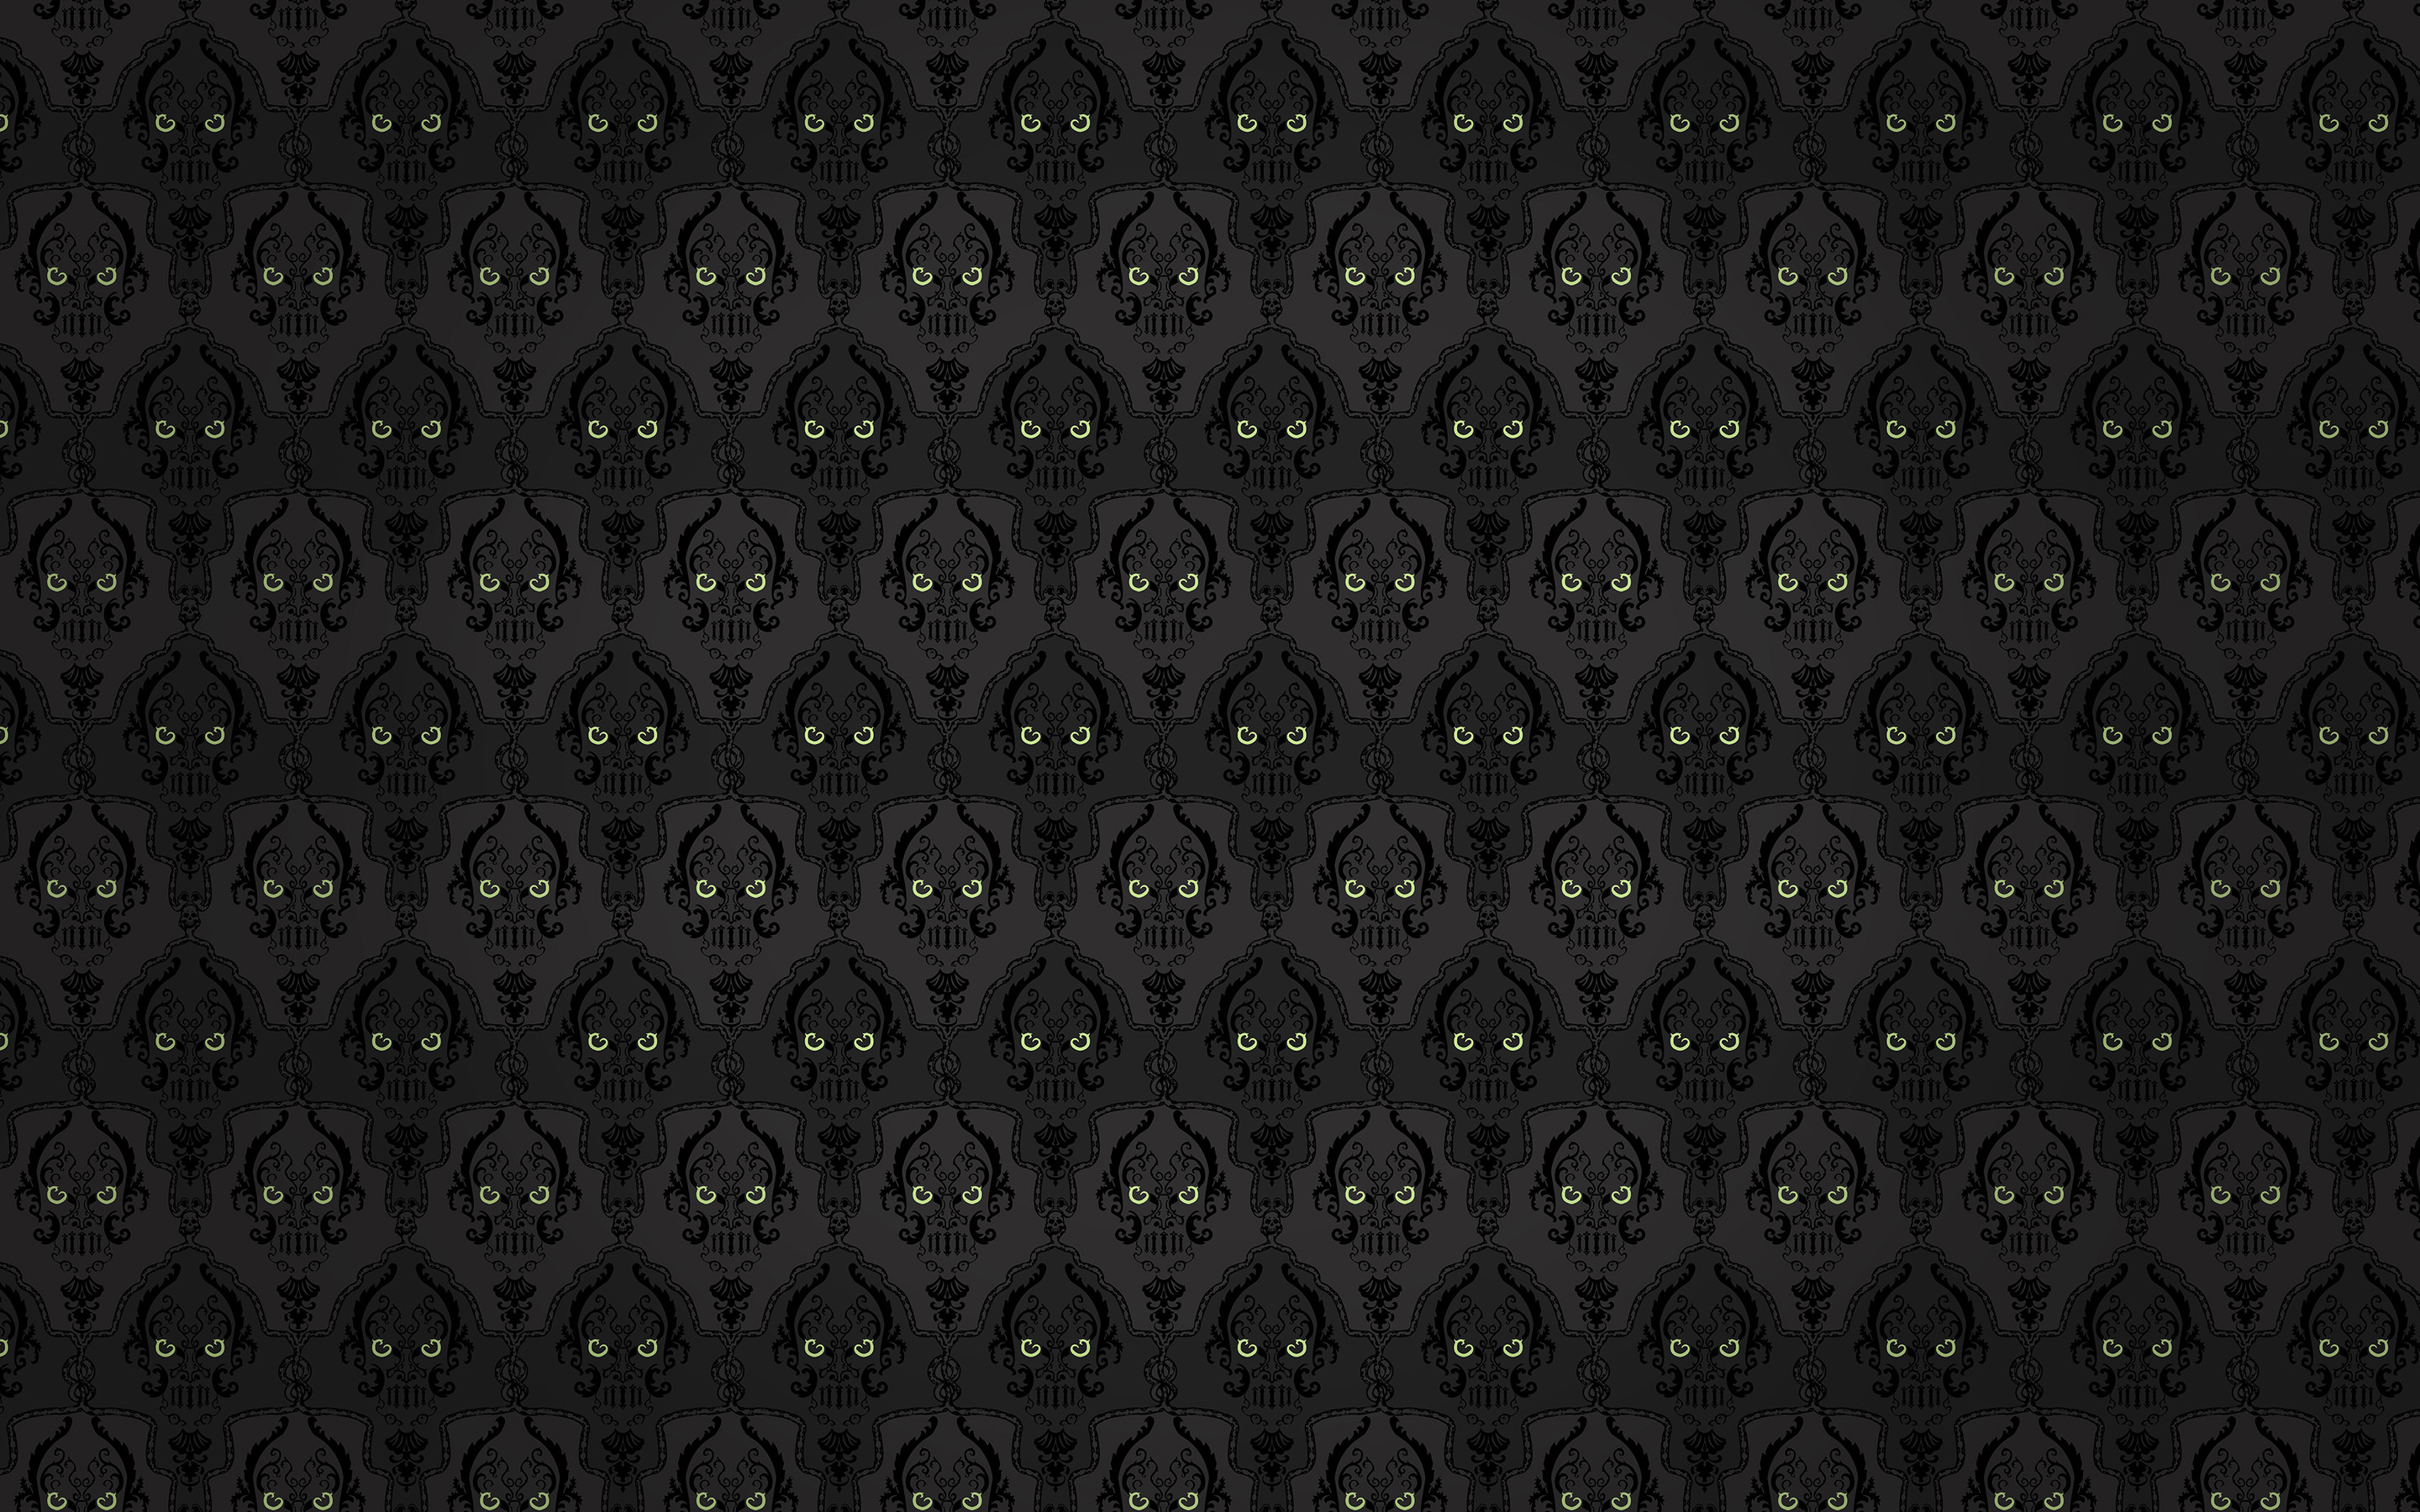 2880x1800 Download Dark Skull Pattern Eyes Wallpaper At Dark Wallpapers